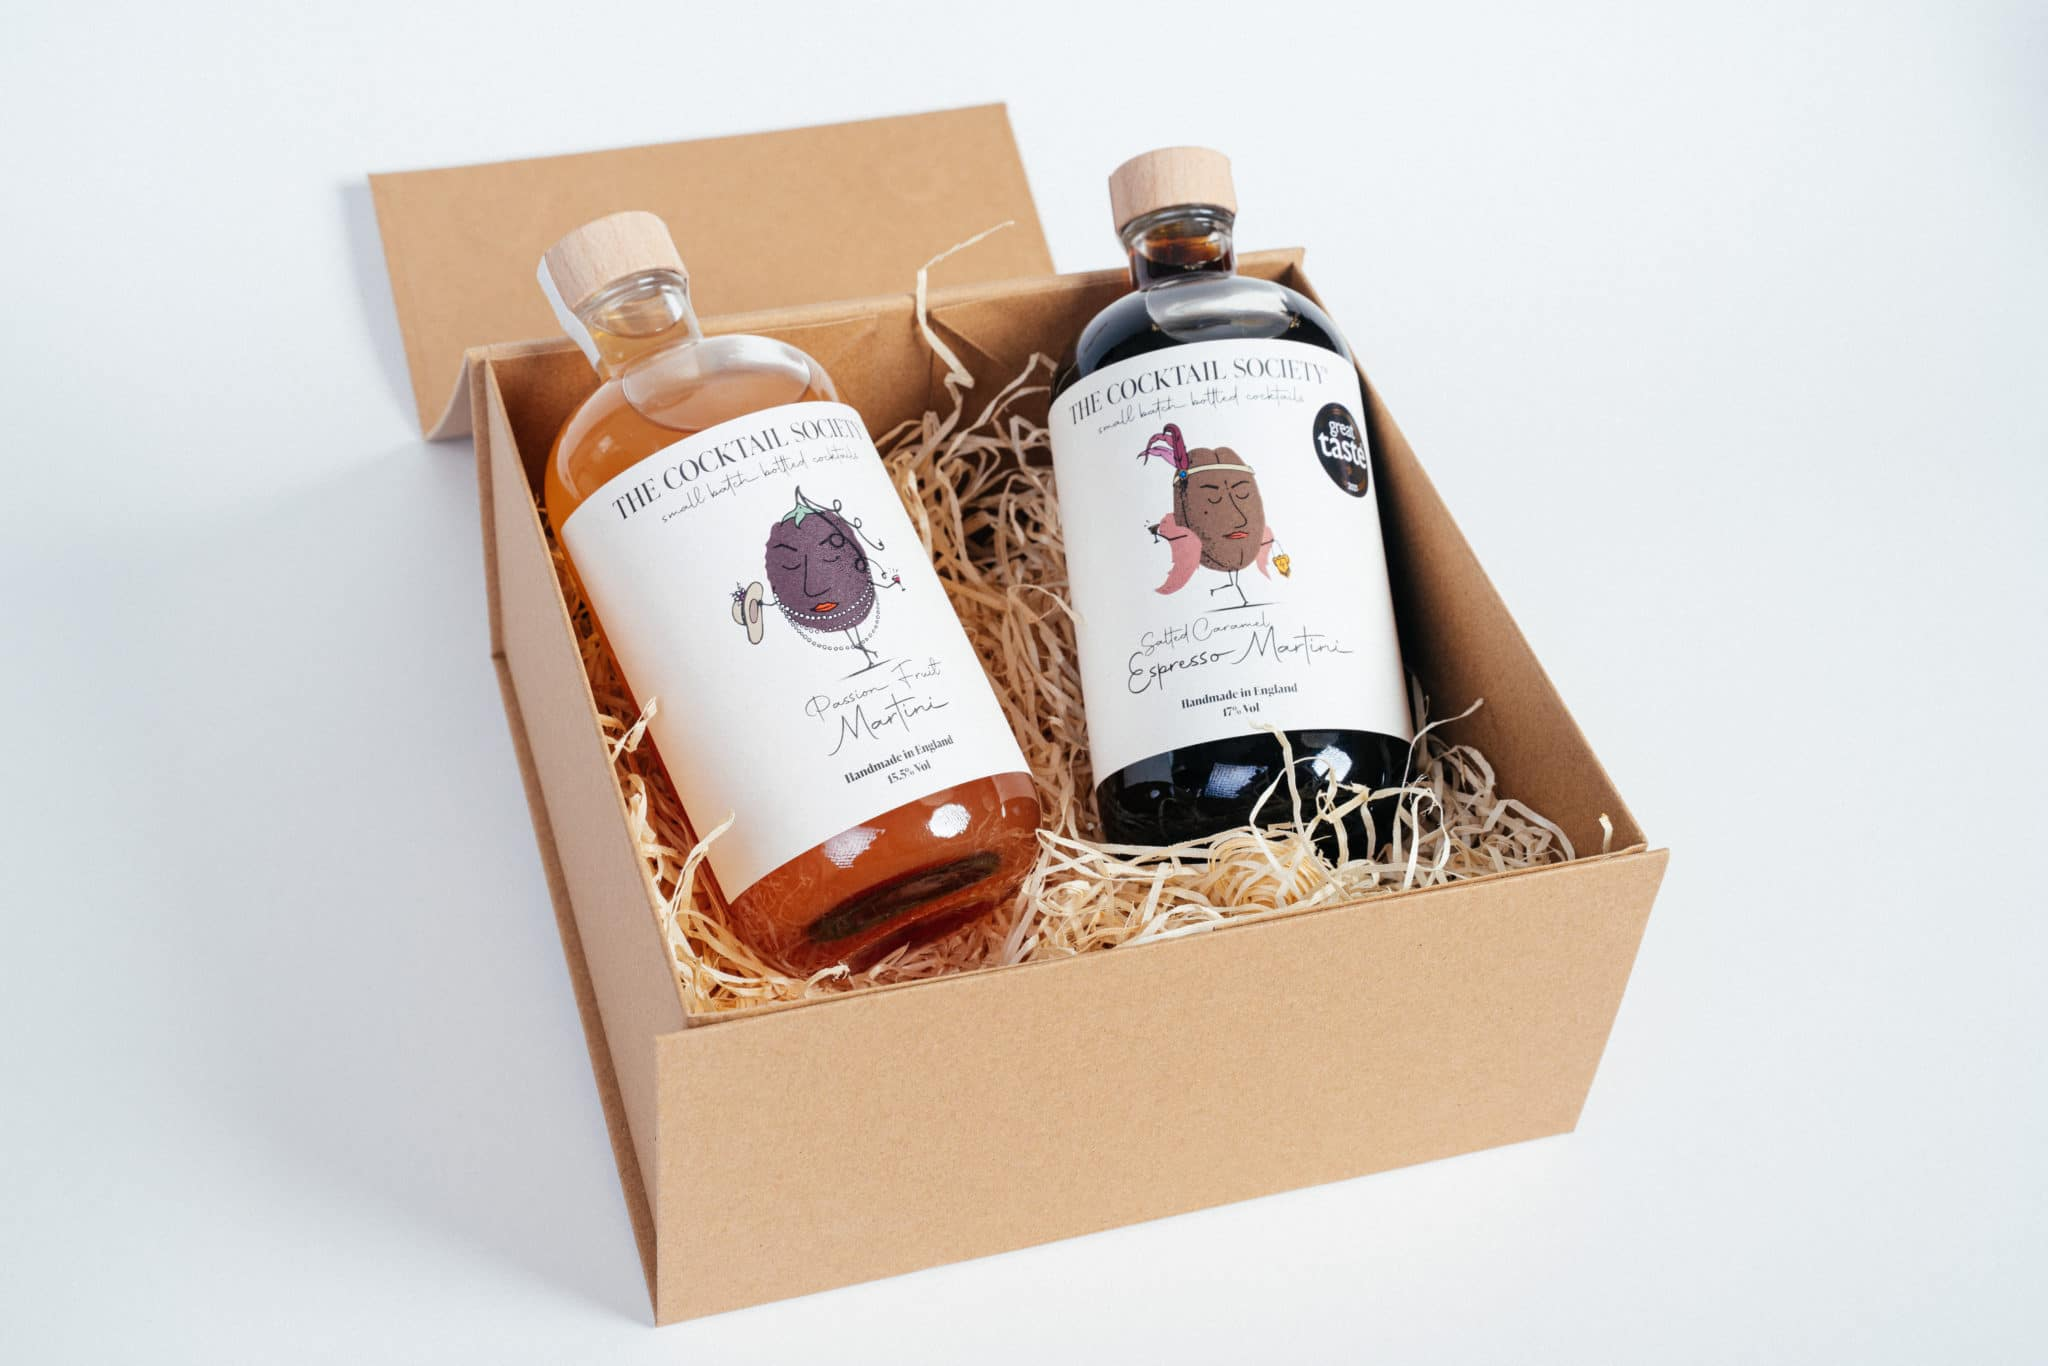 Two bottled cocktails from The Cocktail Society range